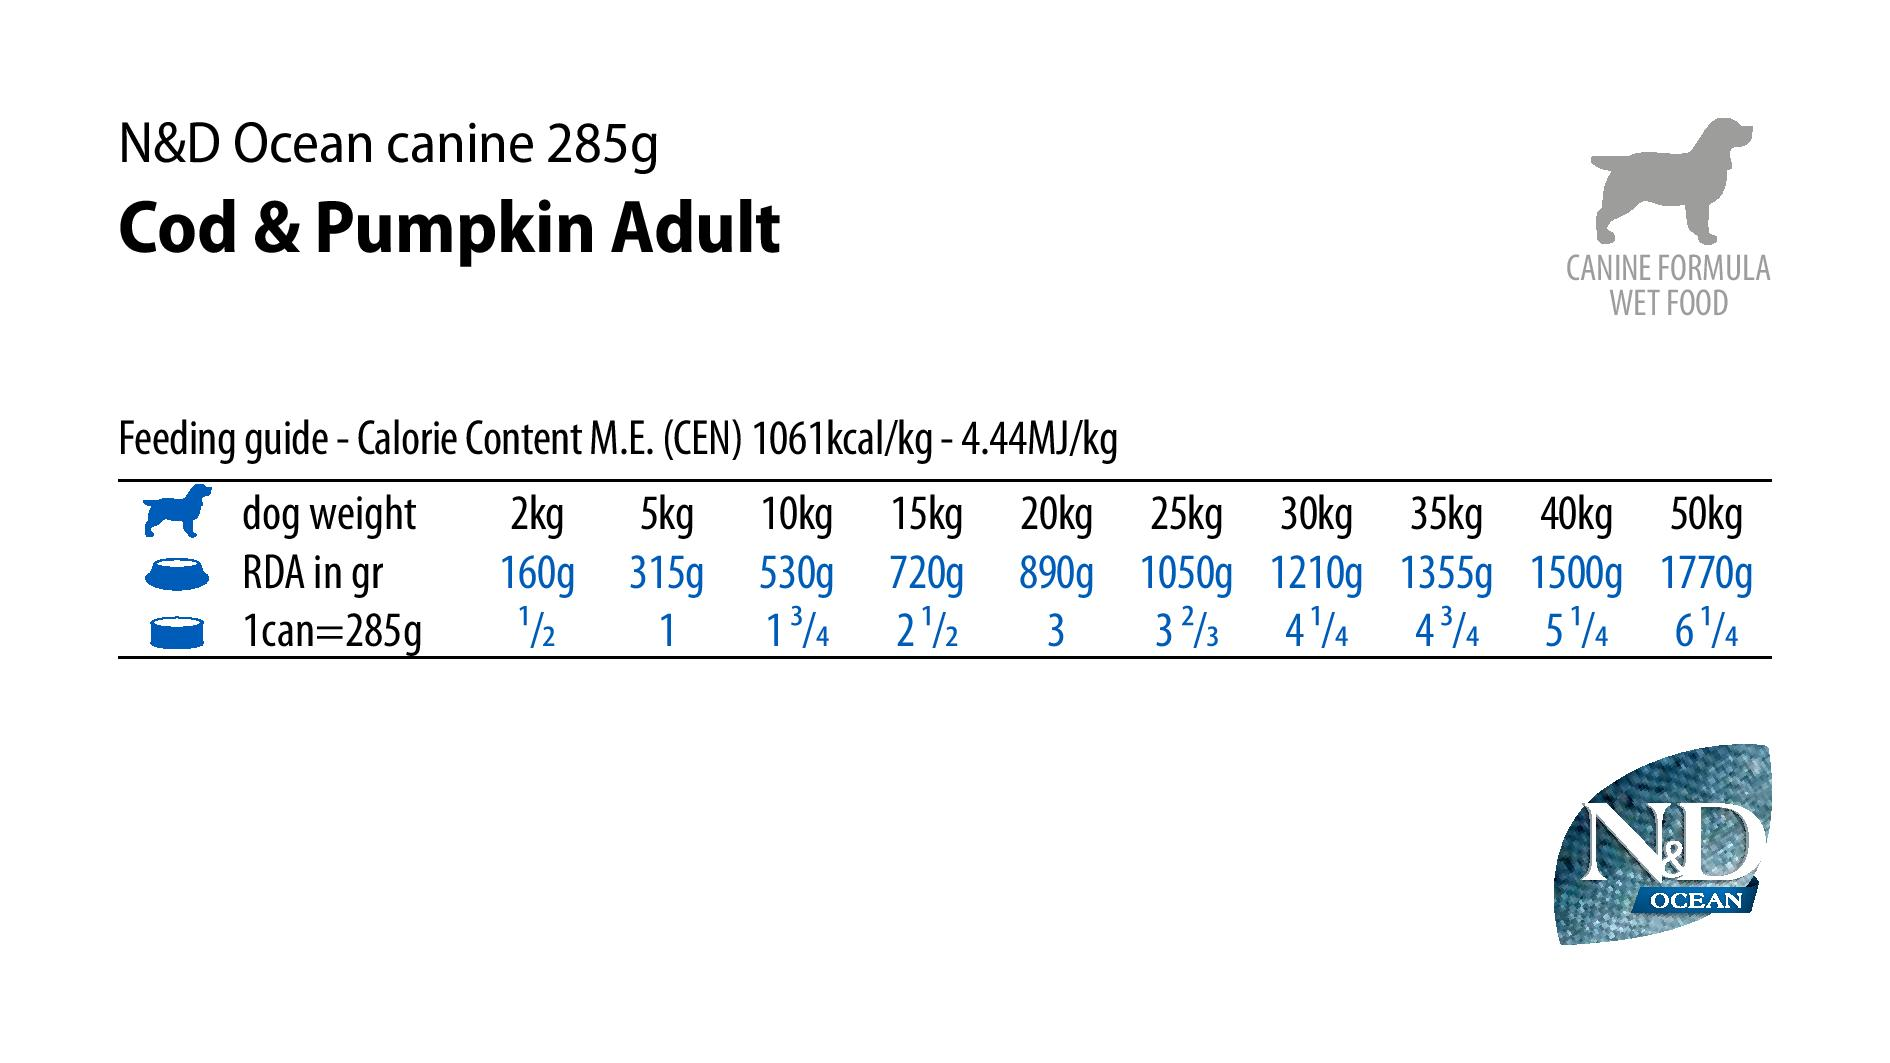 559_31_20191001-nd-ocean-wet-dog-feeding-table-285g-Cod-Pumpkin@web-page-001